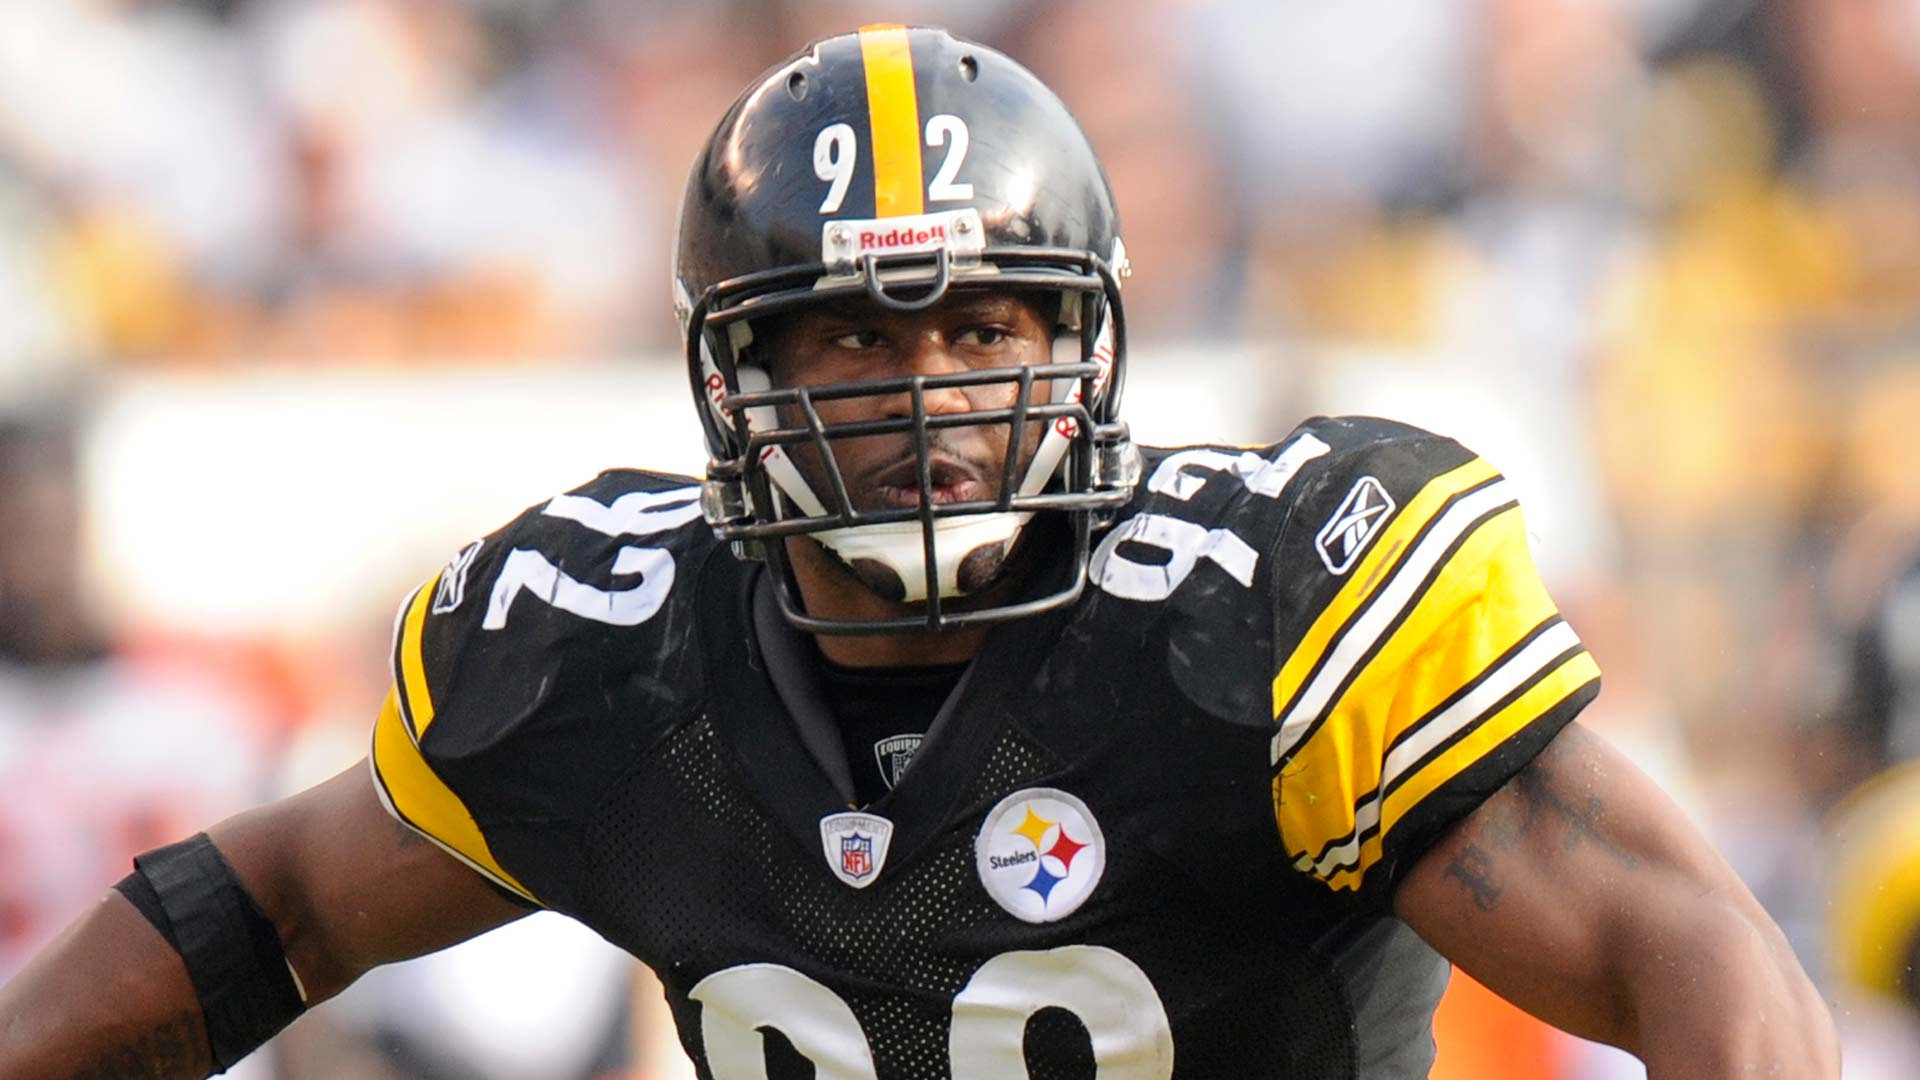 Pittsburgh Steelers linebacker James Harrison (92) in action against the Cincinnati Bengals during the first quarter of an NFL football game Sunday Nov. 15, 2009 in Pittsburgh. Cincinnati won 18-12.